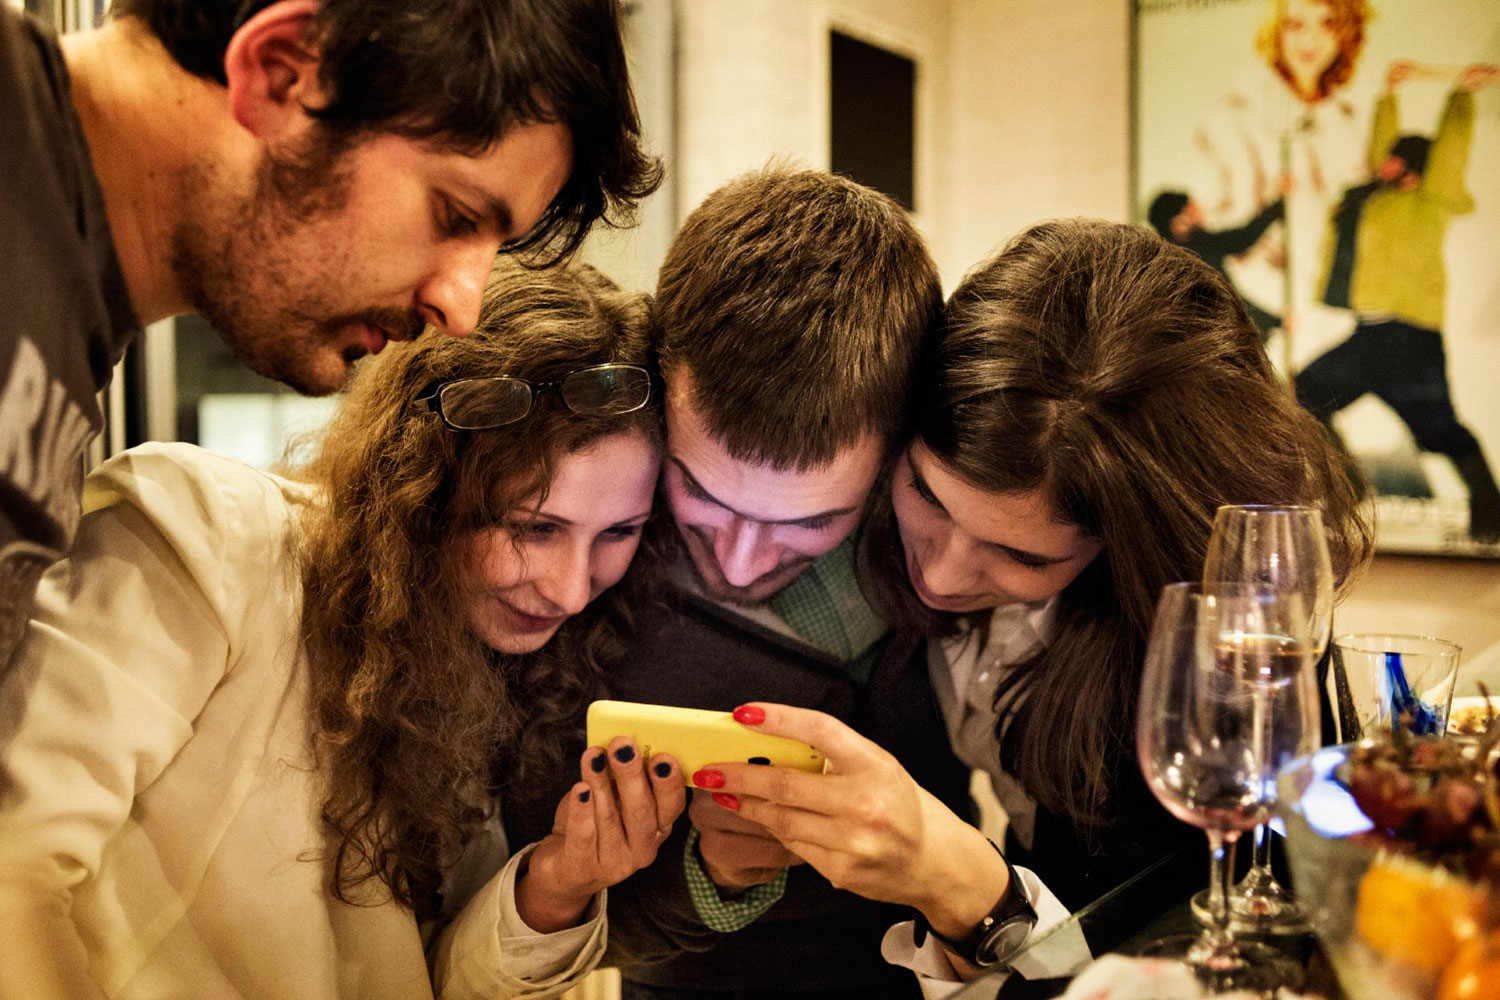 """Maxim Pozdorovkin (Left), Maria Alyokhina, Pyotr Verzilov and Nadezhda Tolokonnikova react to the government cancellation of the first public screening in Moscow of a documentary about Pussy Riot. The film, """"Pussy Riot: A Punk Prayer,"""" was supposed to have been screened at the Gogol center in Moscow on December 29, less than a week after two members of Pussy Riot were released from prison."""